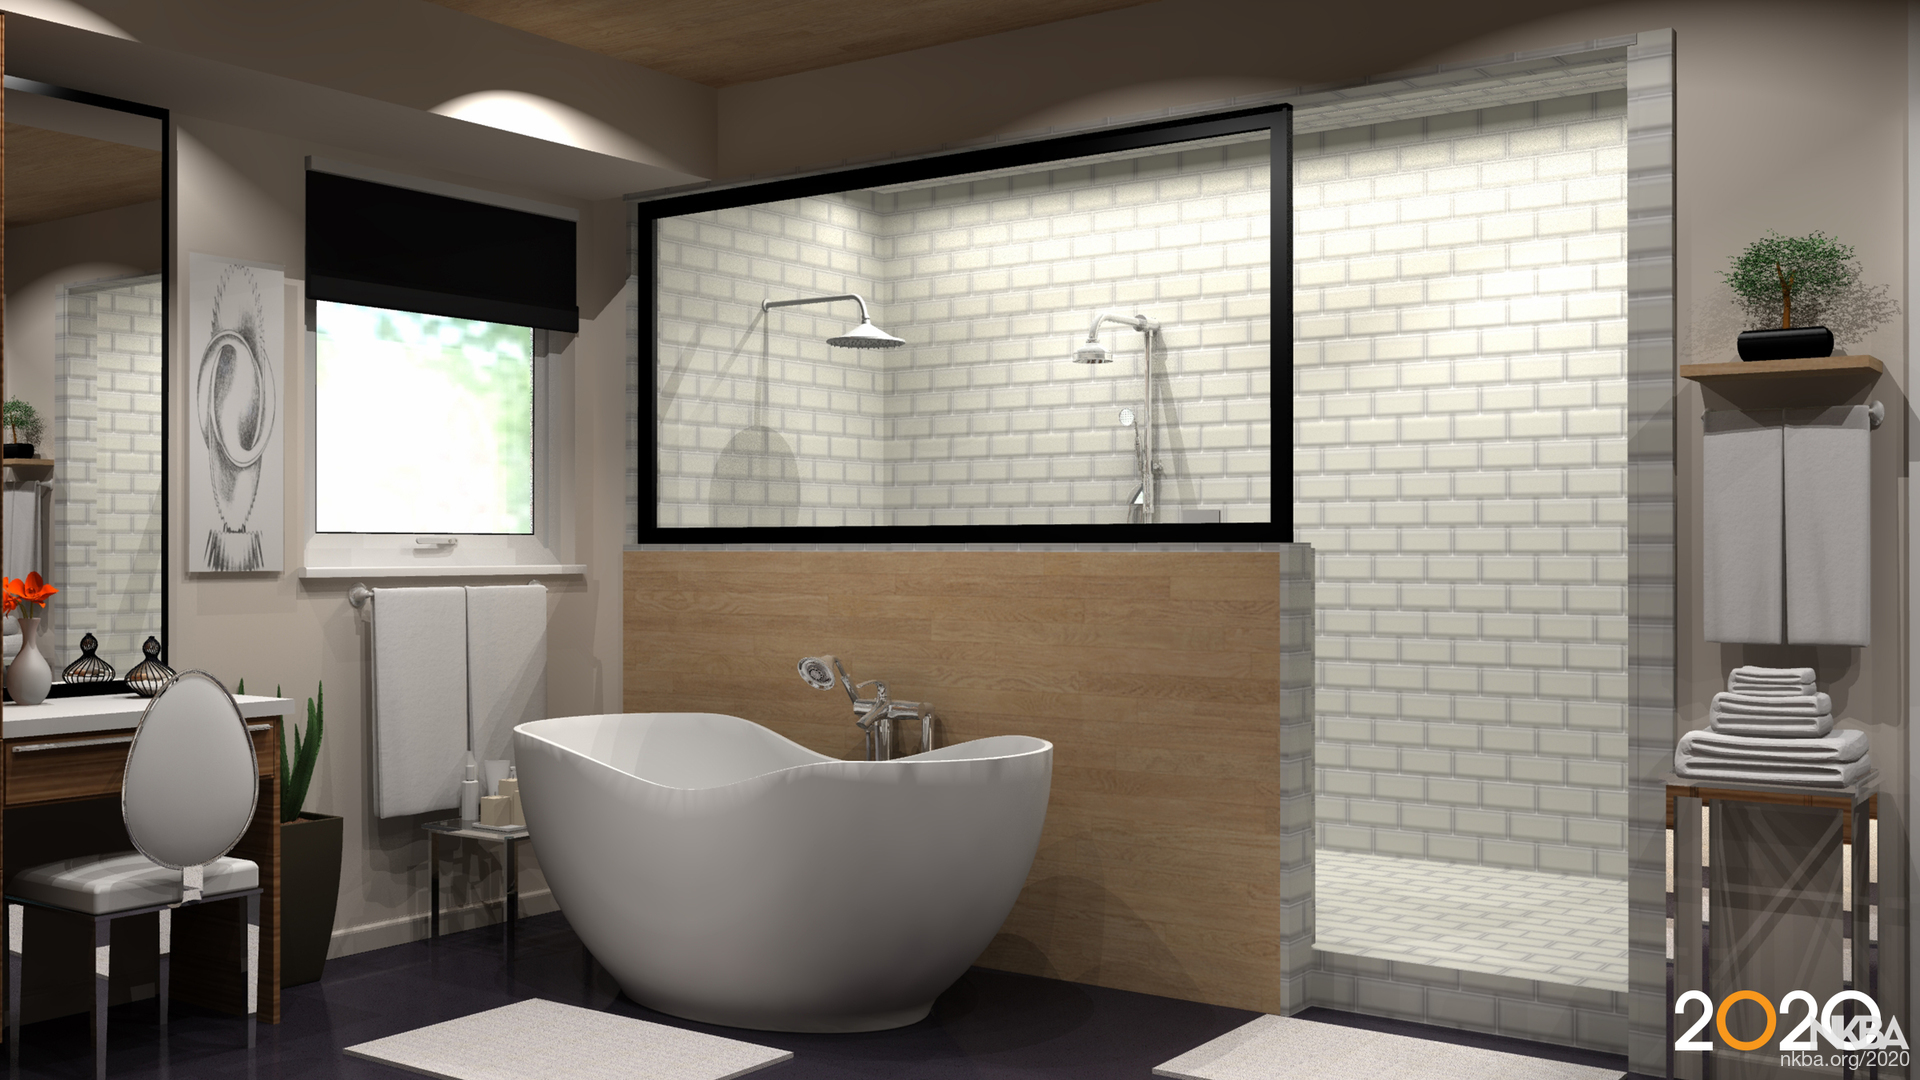 A2sbidd3h50 Astonishing 2020 Stylish Bathroom Interior Design Download 3d House Today 2020 10 14